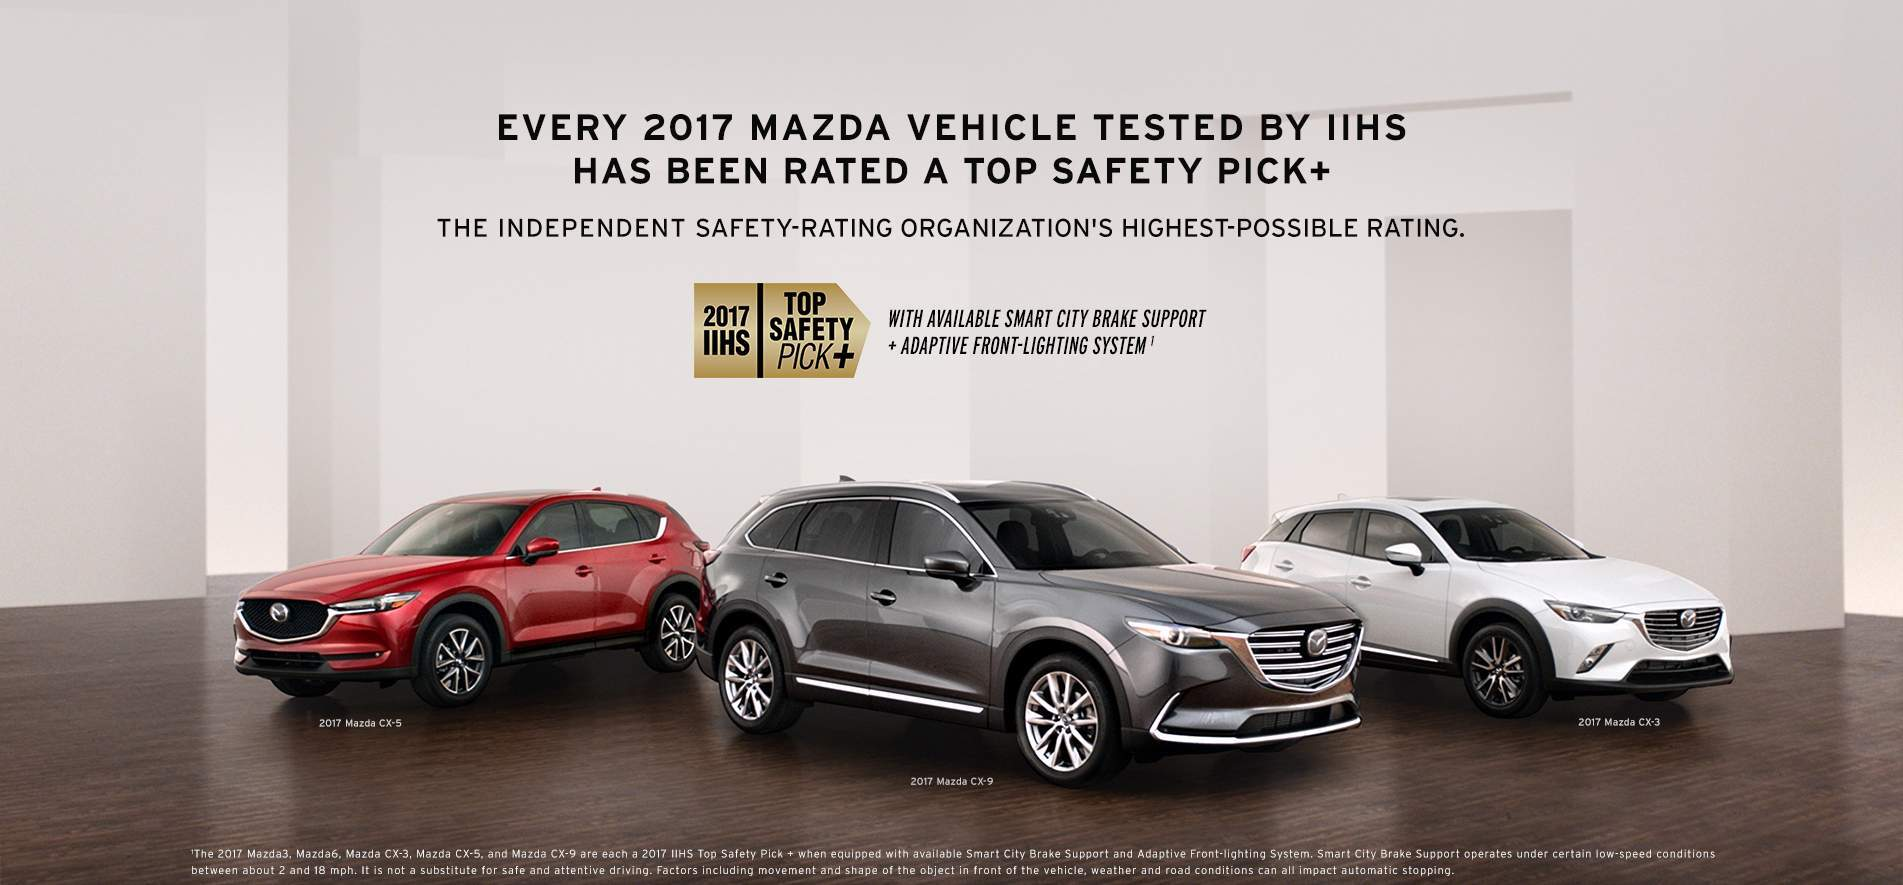 IIHS Top Safety Picks